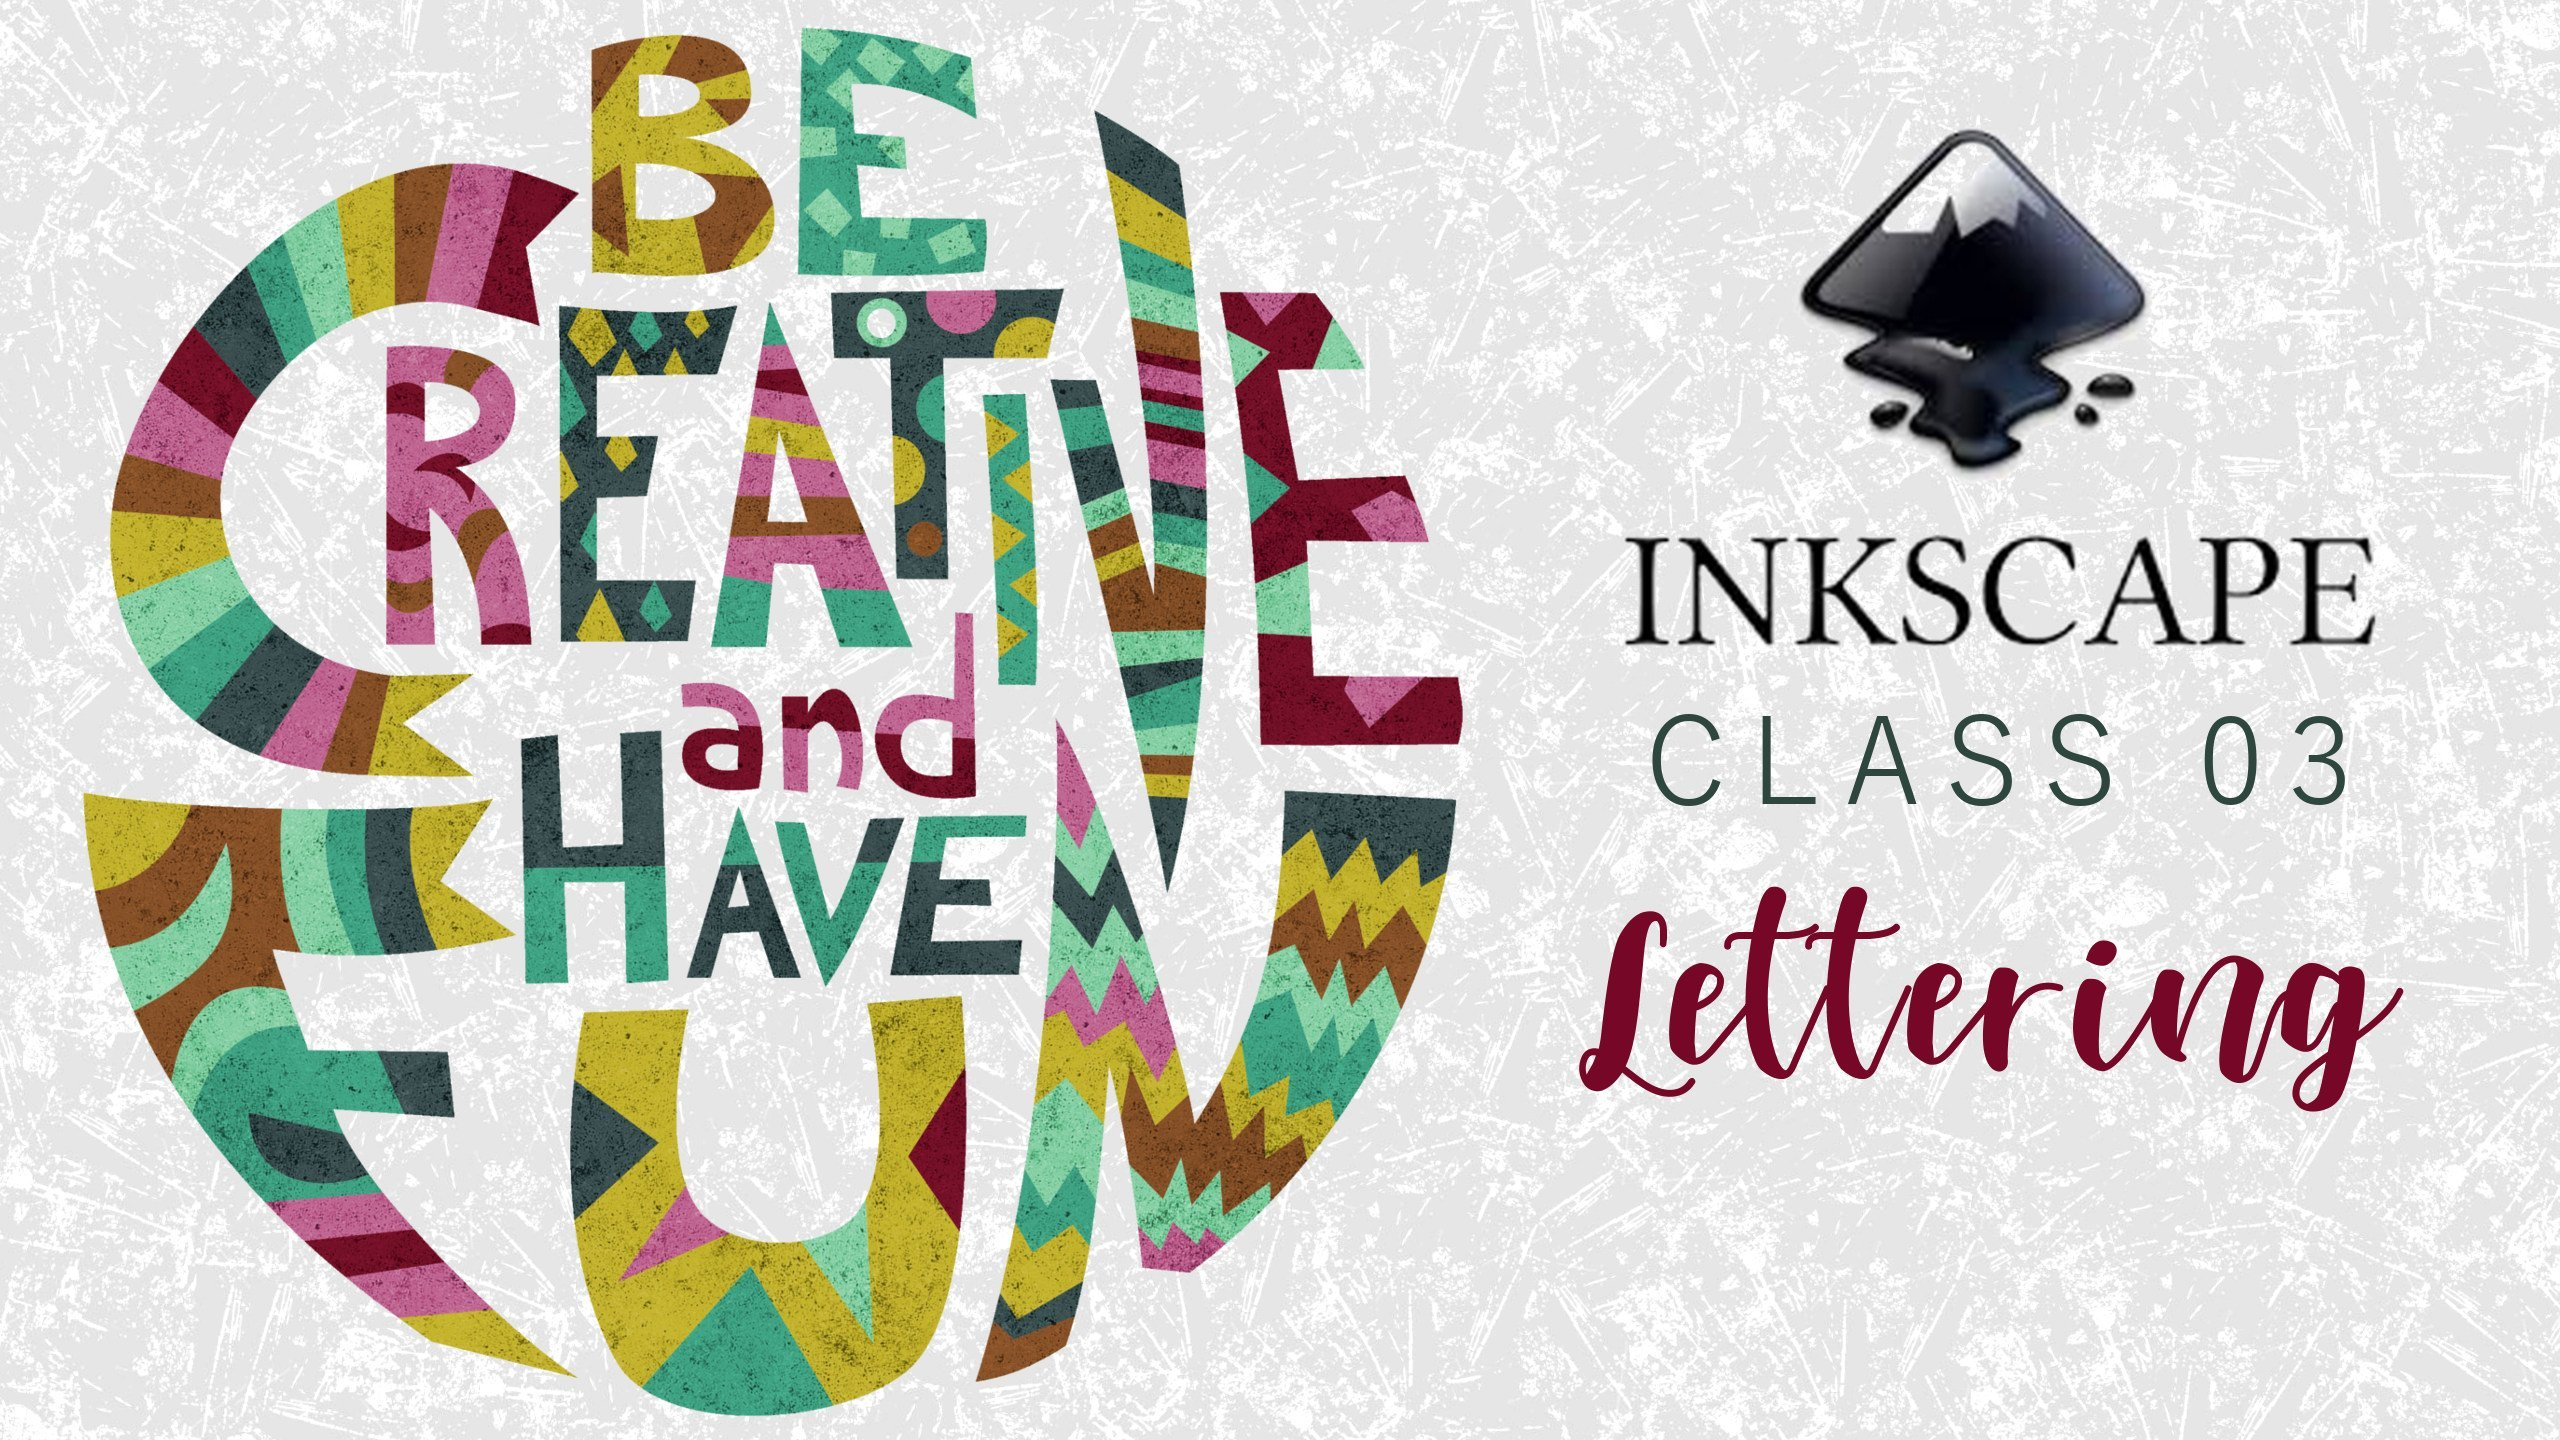 Inkscape for beginners Class 03